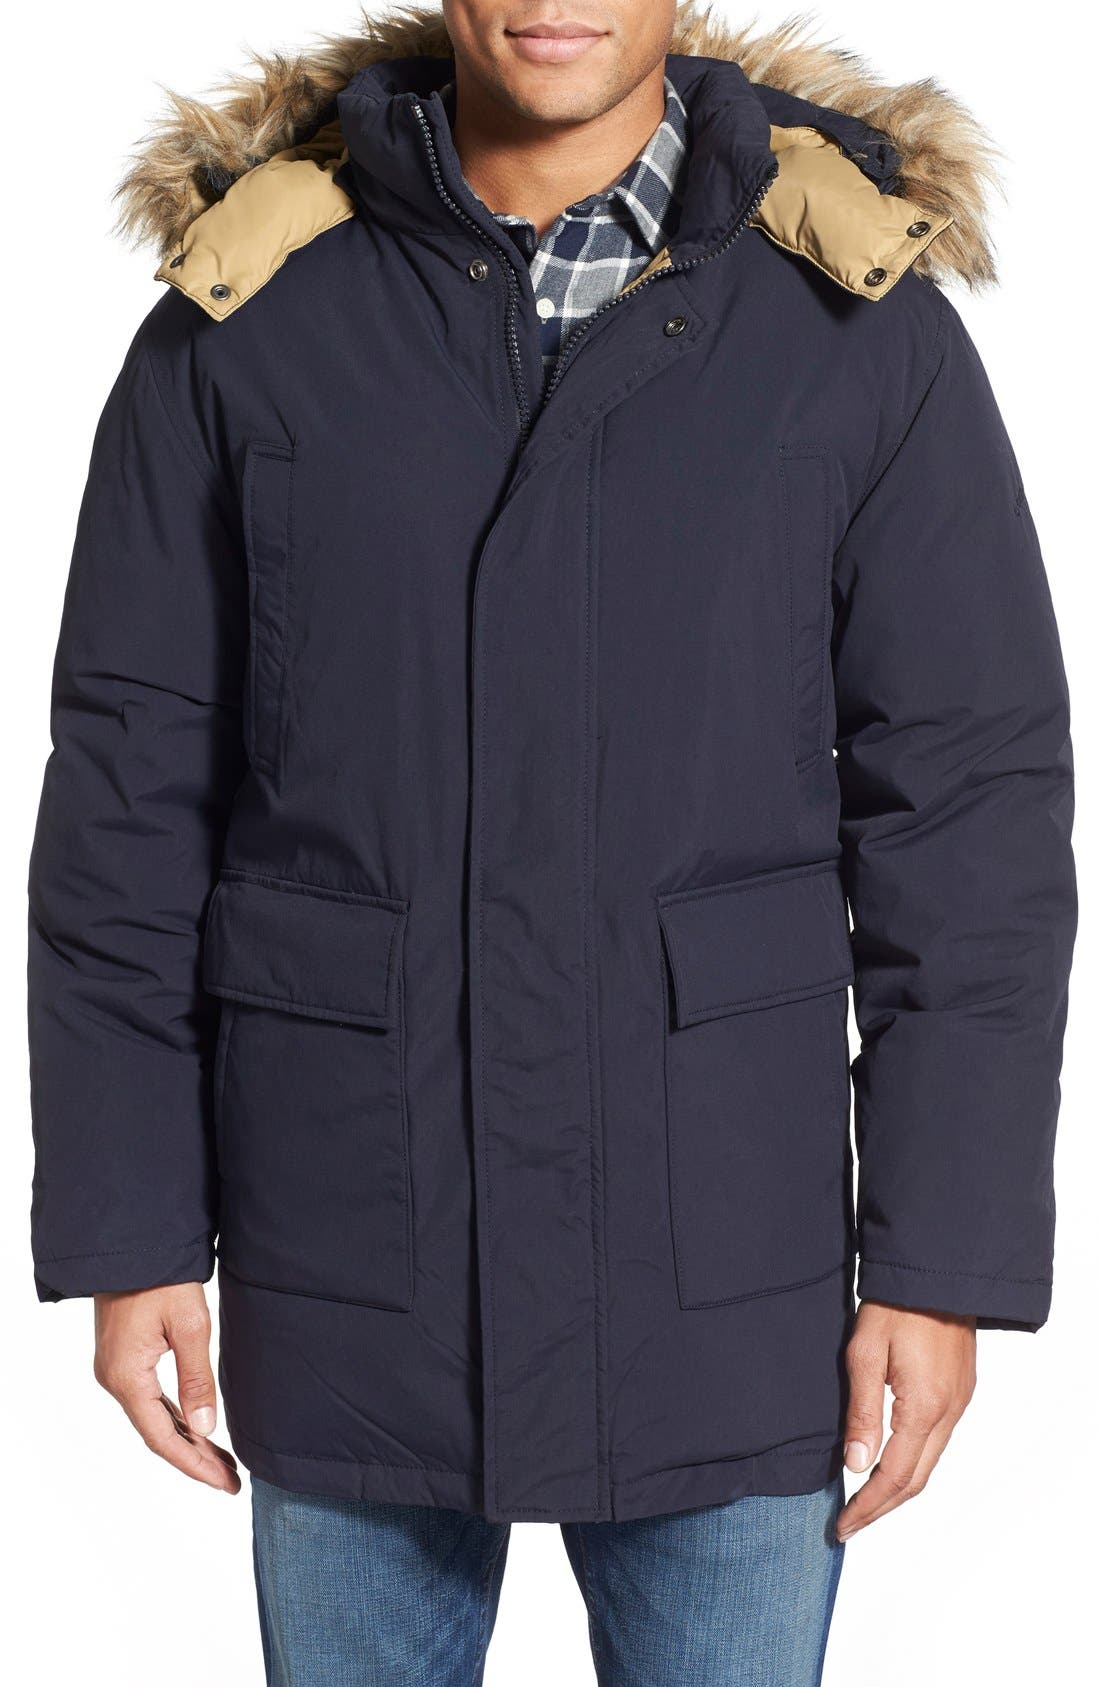 'Iceberg' Water Resistant Down Parka with Faux Fur Trim,                         Main,                         color, Navy